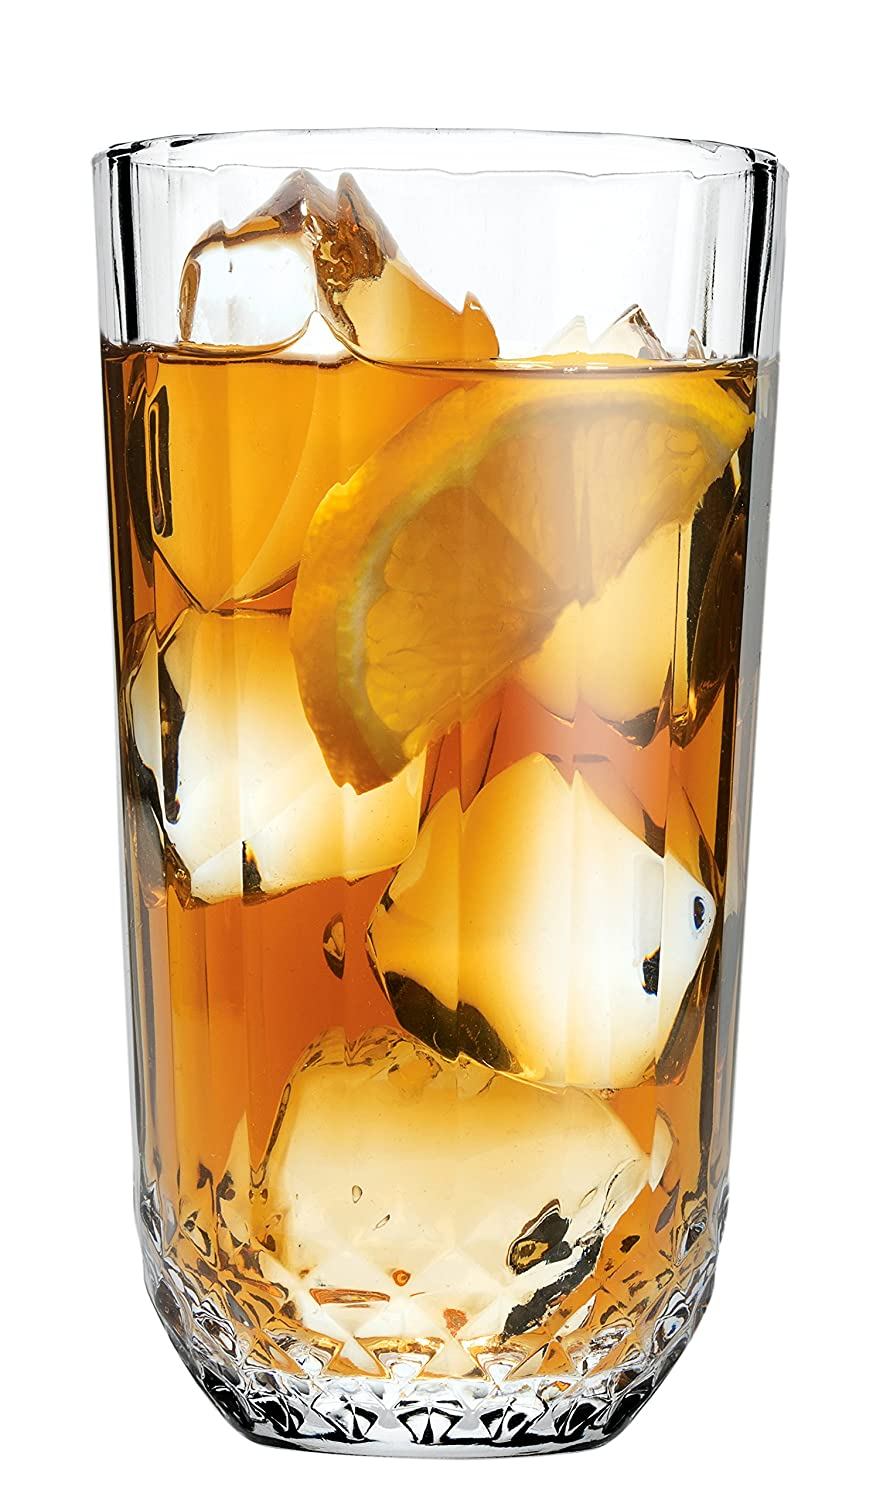 Hospitality Glass Brands 52770-024 Diony 11.5 oz. Long Drink (Pack of 24)